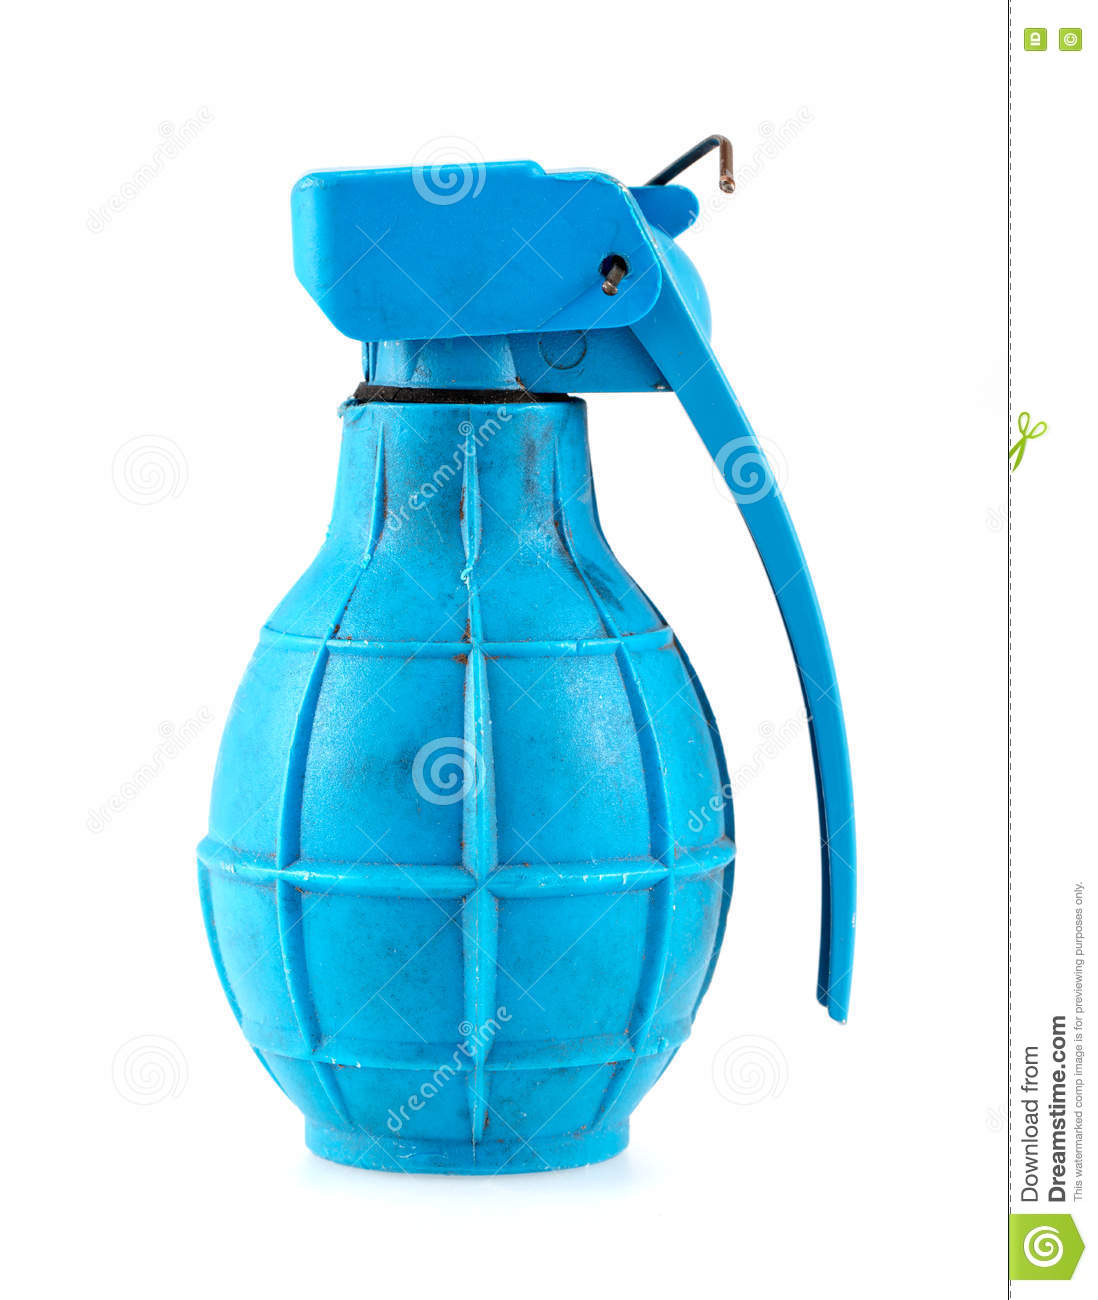 Training hand grenade stock photo  Image of throwing - 80033596